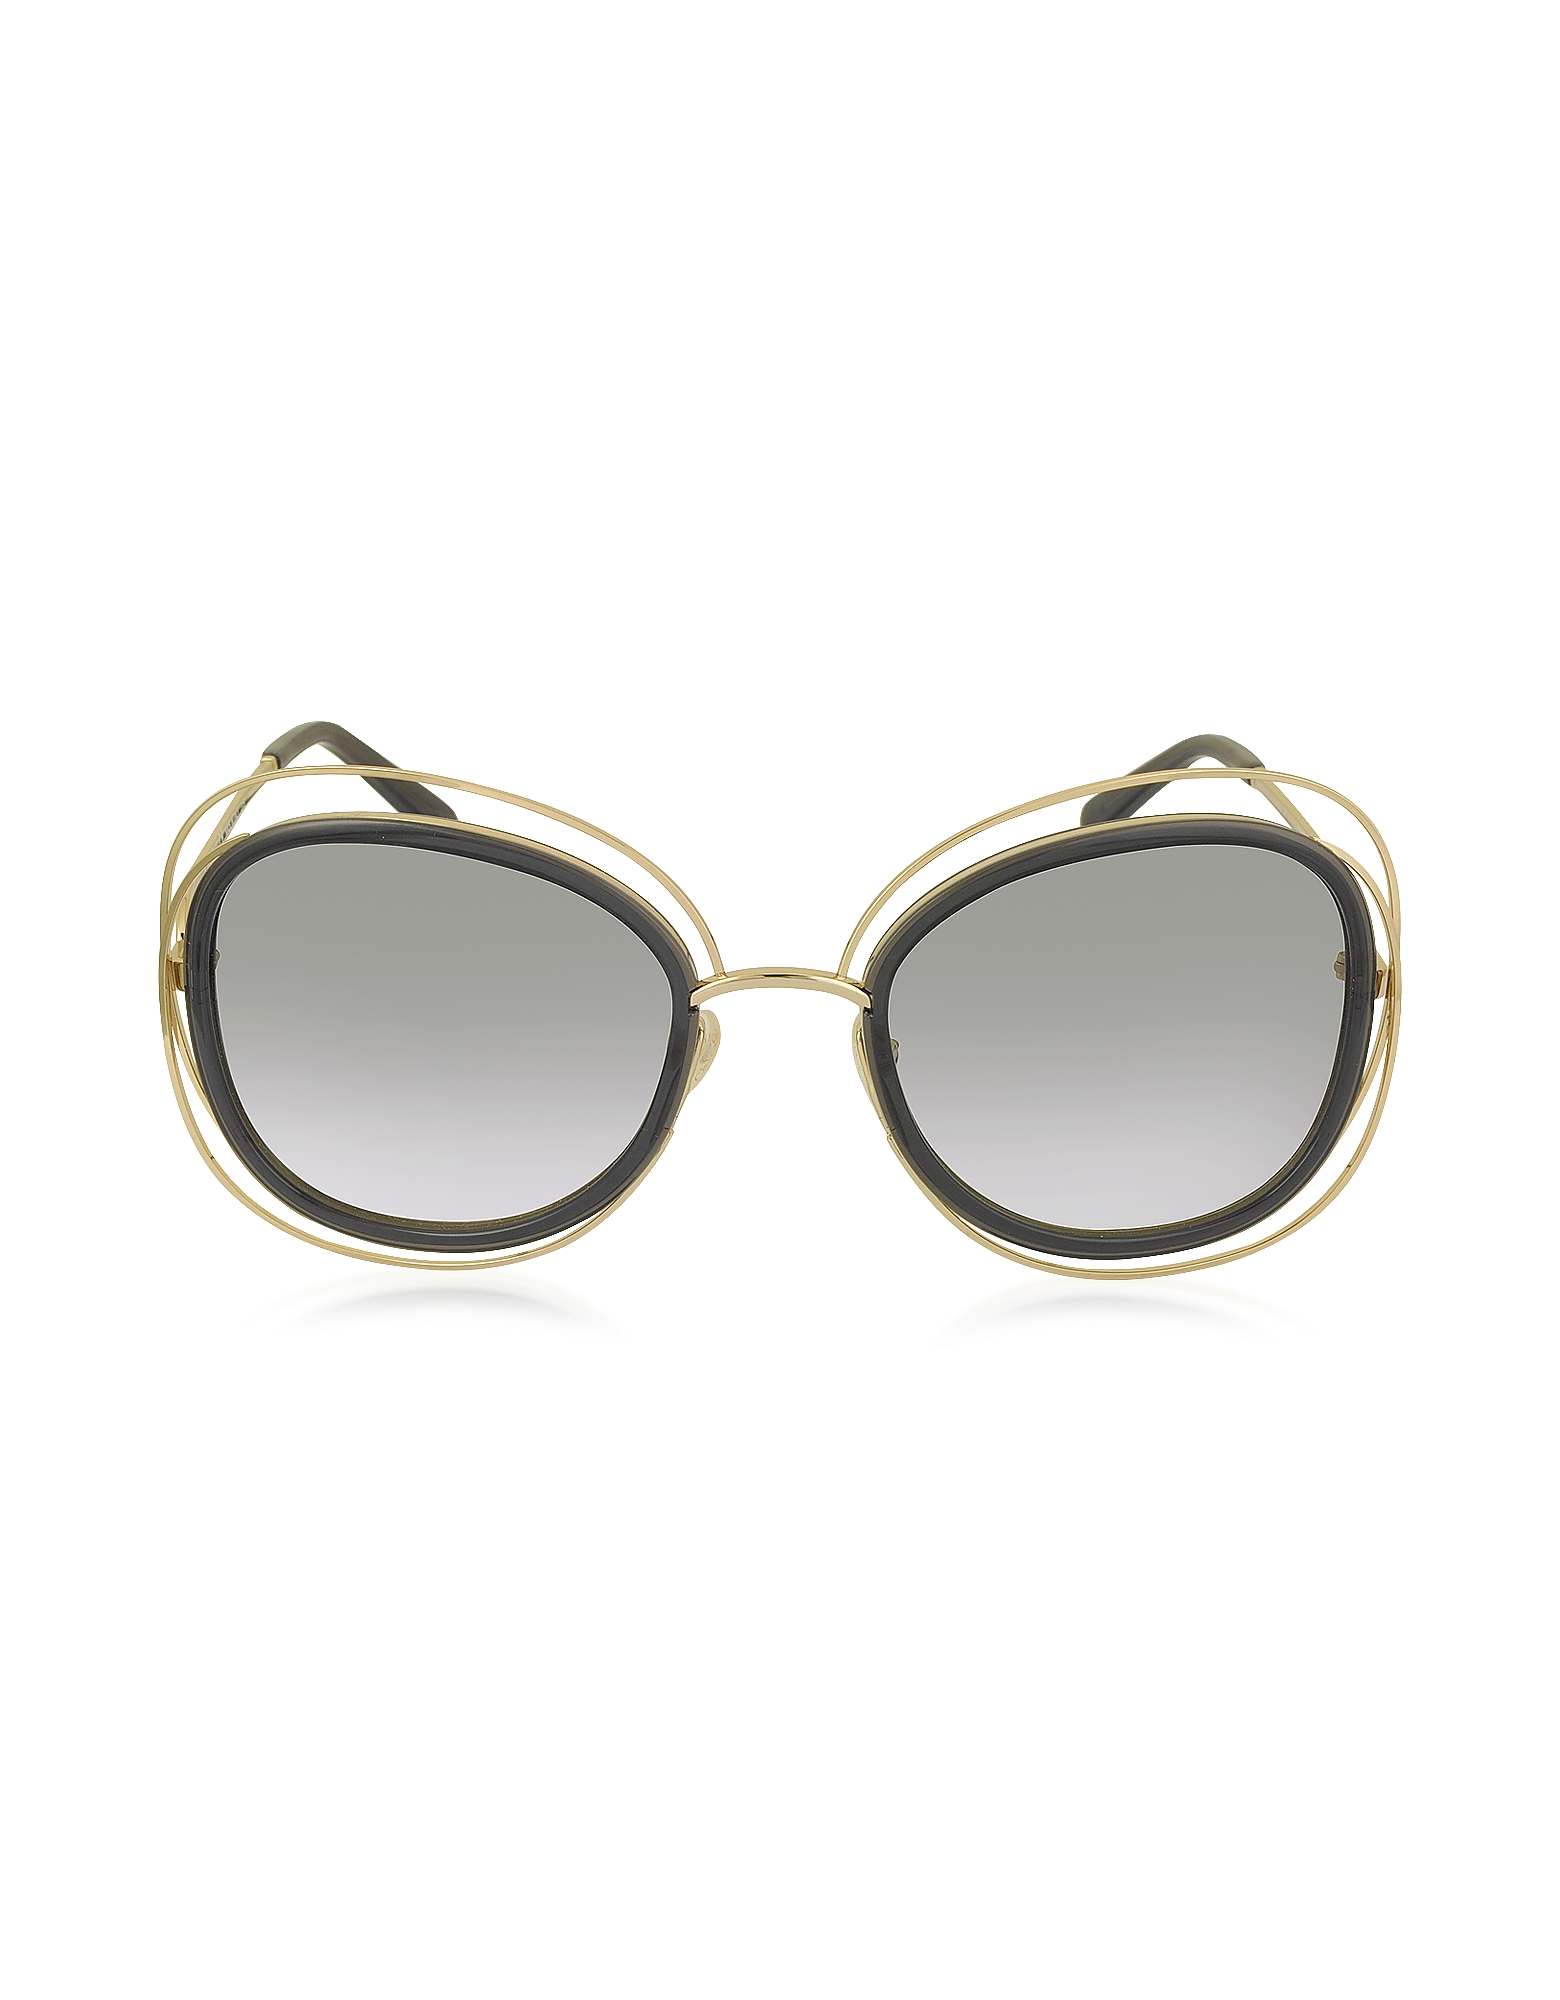 Chloe Sunglasses, CARLINA CE 123S Square Oversized Acetate & Metal Women's Sunglasses